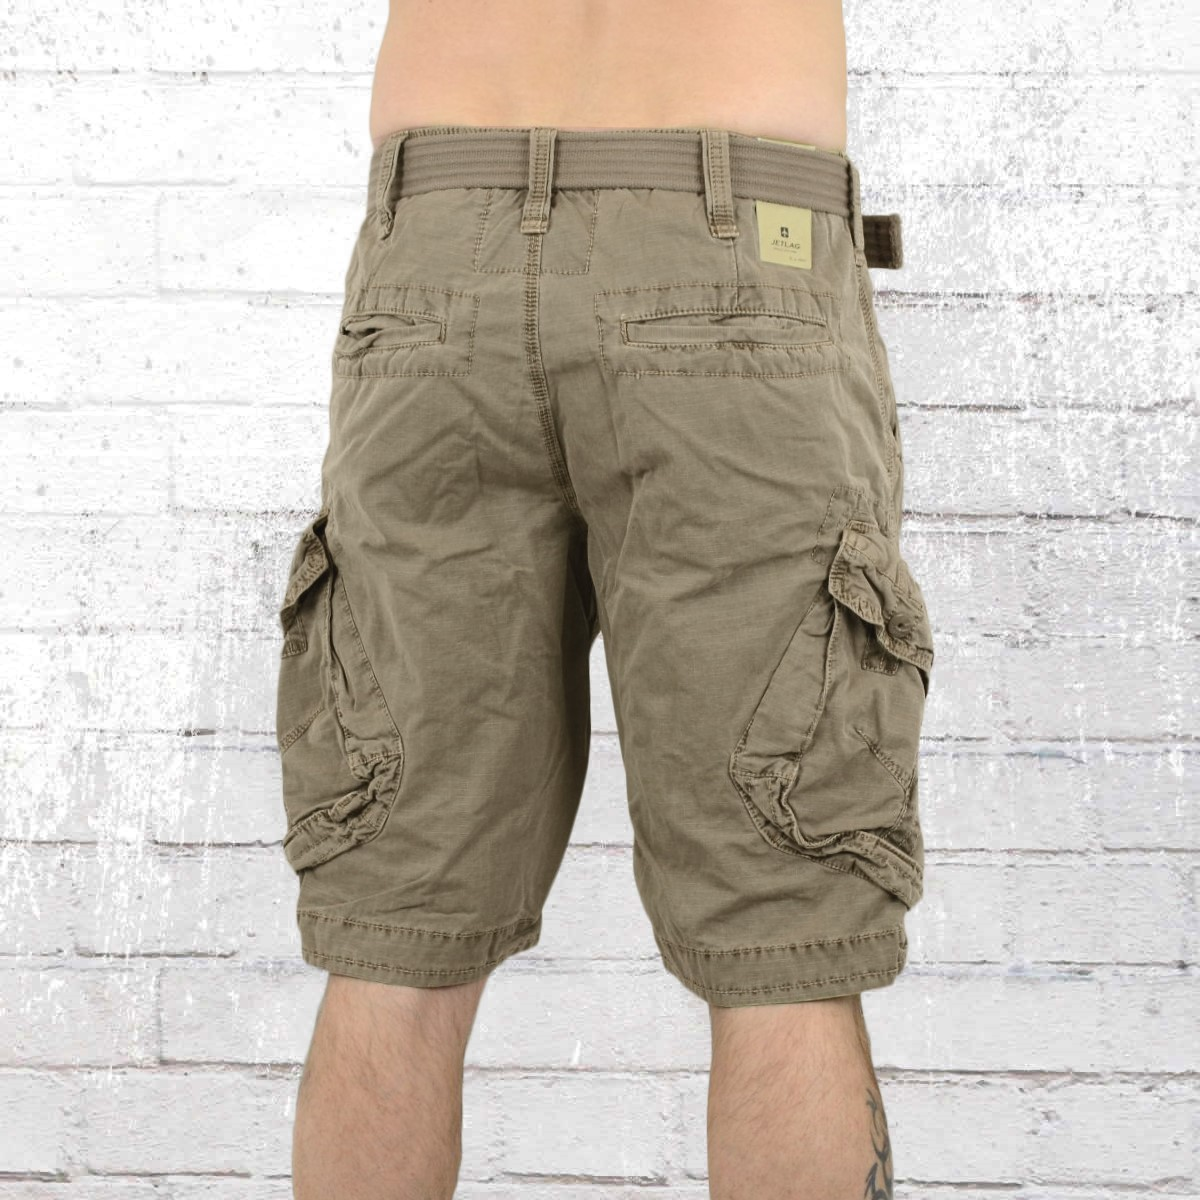 7b1cee01f1b495 Have you seen? Jet Lag Cargo Mens Short Take Off 3 black